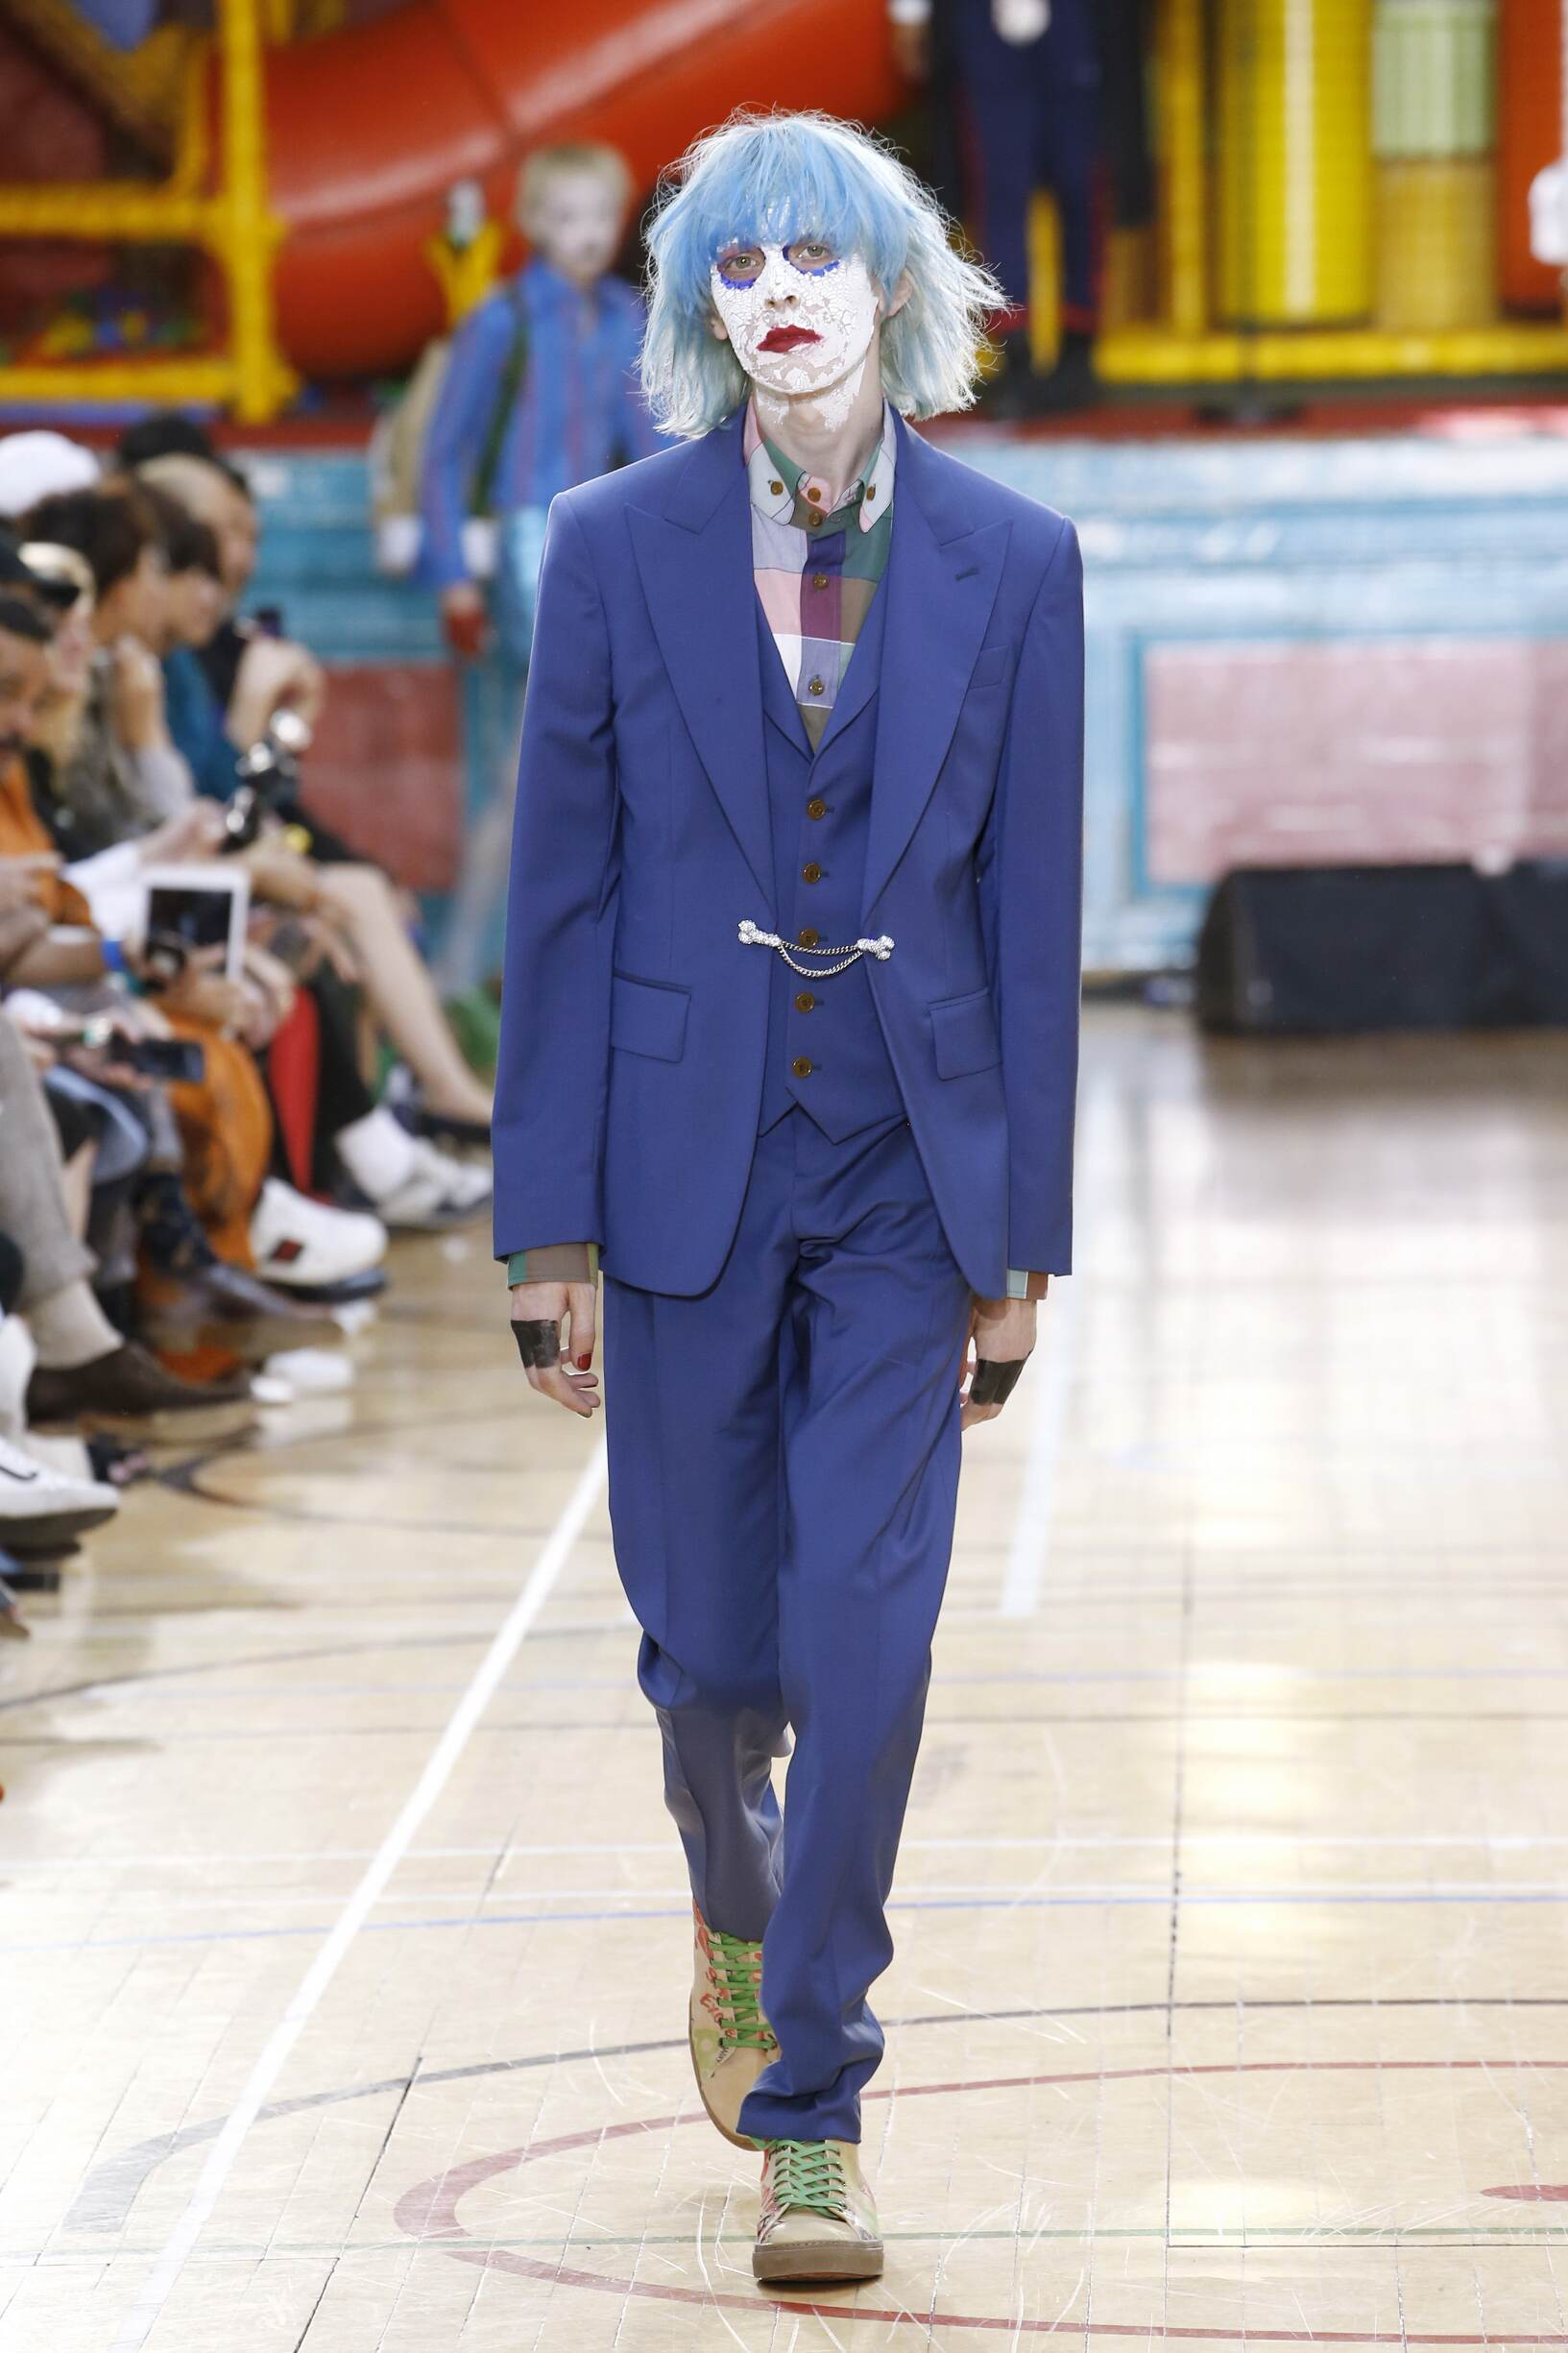 Catwalk Vivienne Westwood Man Fashion Show Summer 2018